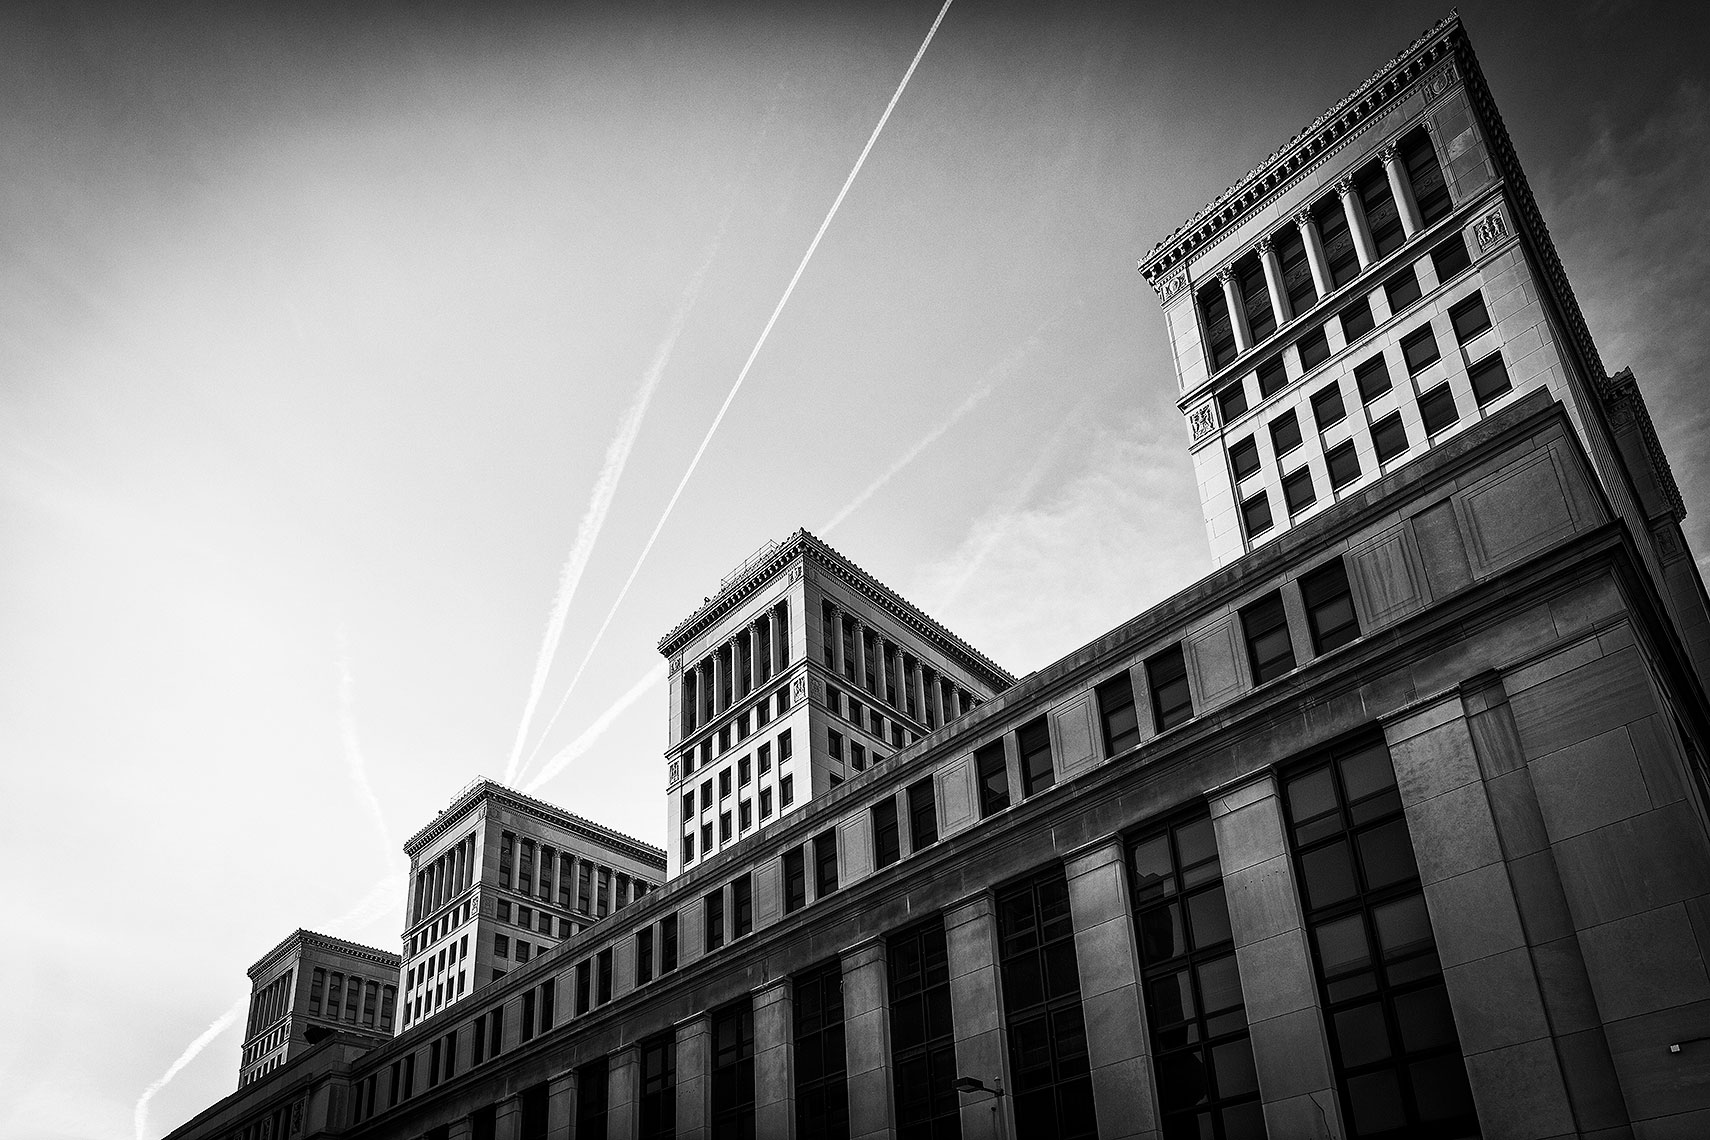 detroit_cityscape-9731-Edit-2.jpg